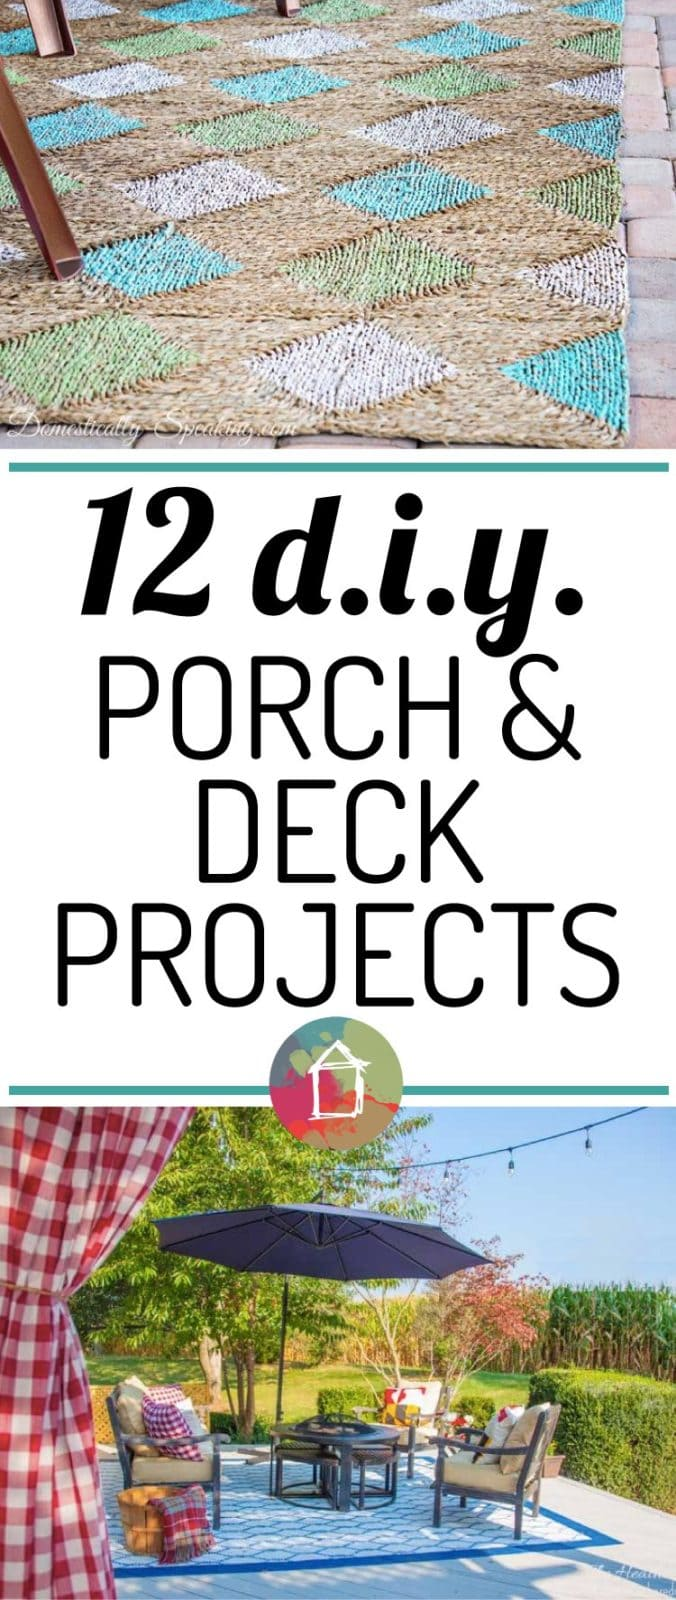 Such a great list of DIY porch and deck projects! I can't wait to try the DIY outdoor curtains and painted rugs!